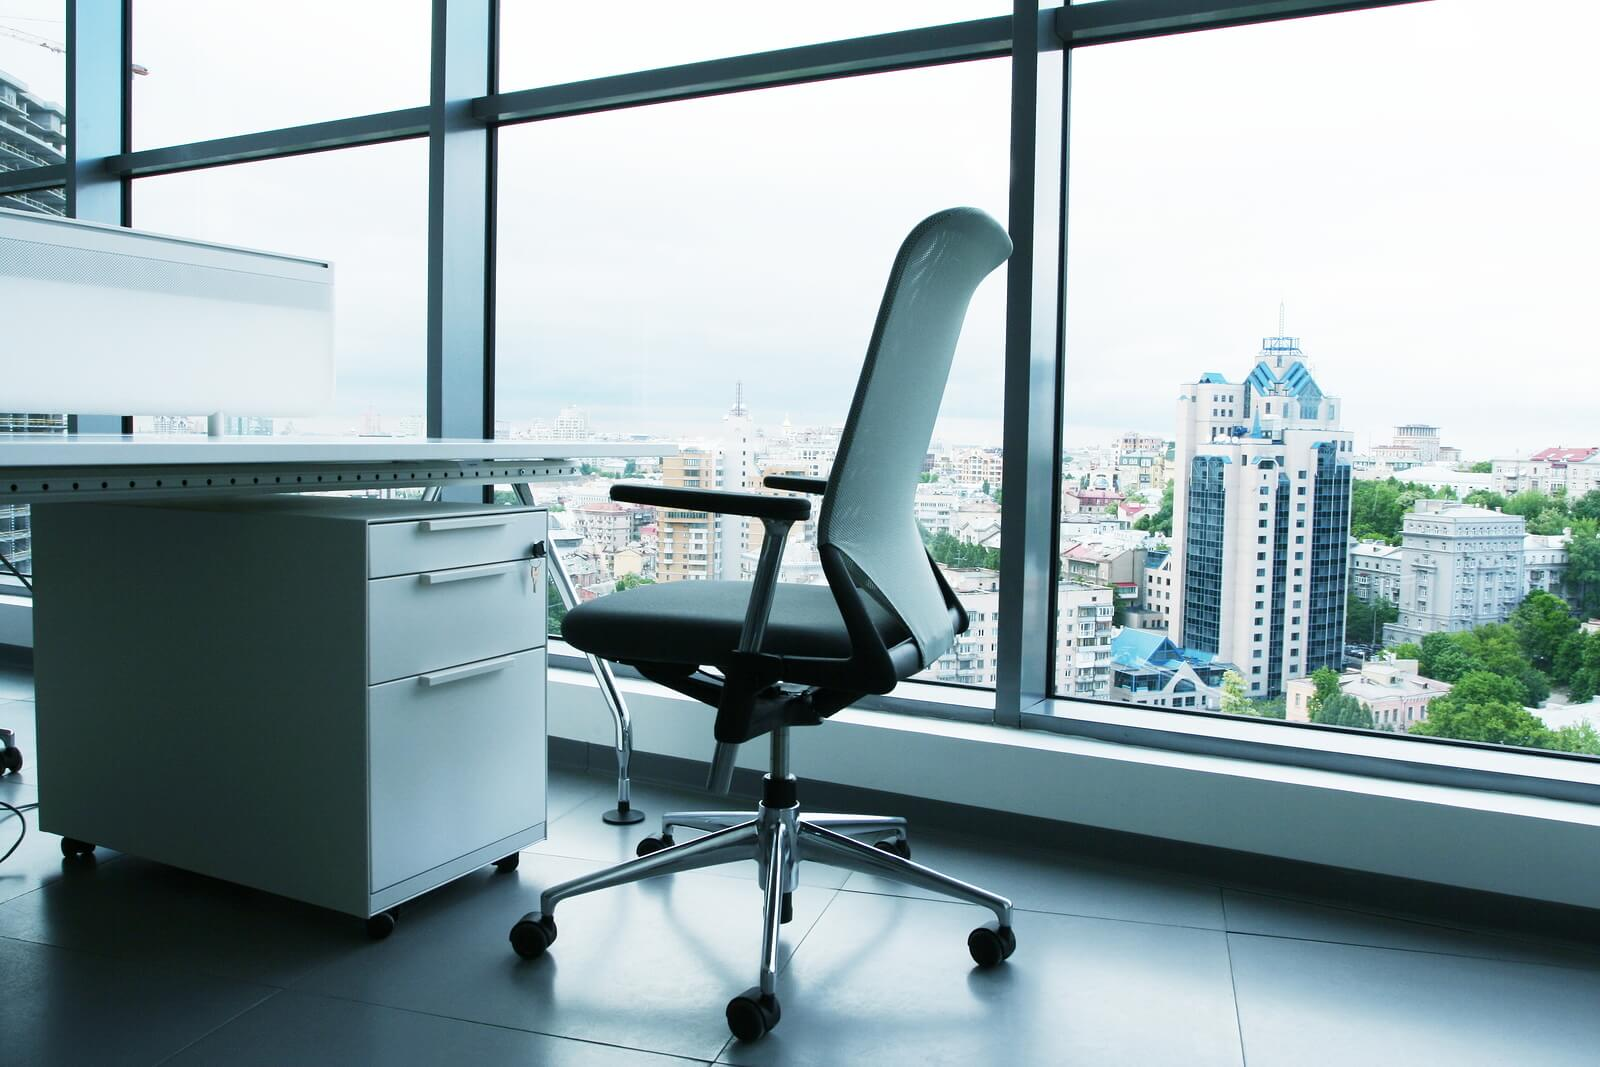 office interior design ergonomic chair